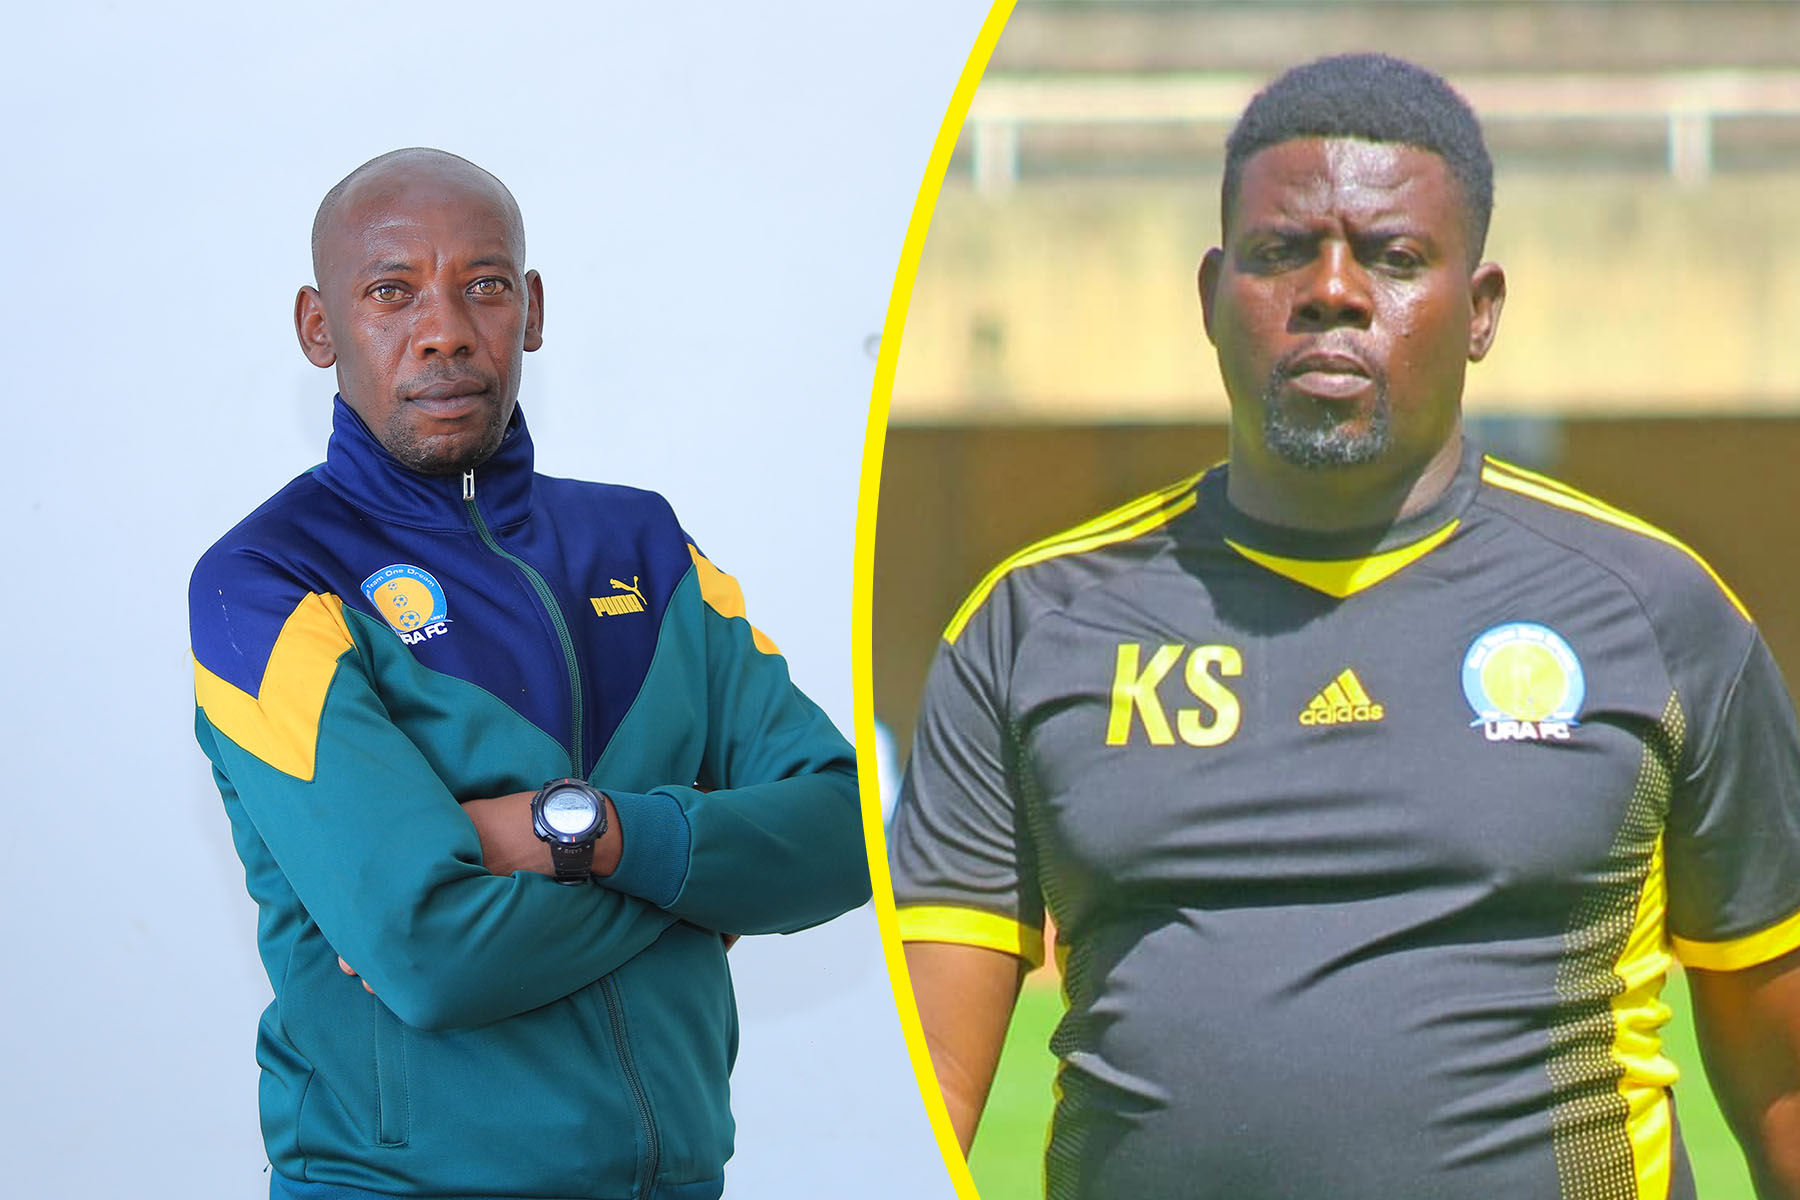 Simeone Masaba and Kiggundu Stephen to Feature on the Technical Panel of the U-20 National Junior Team.